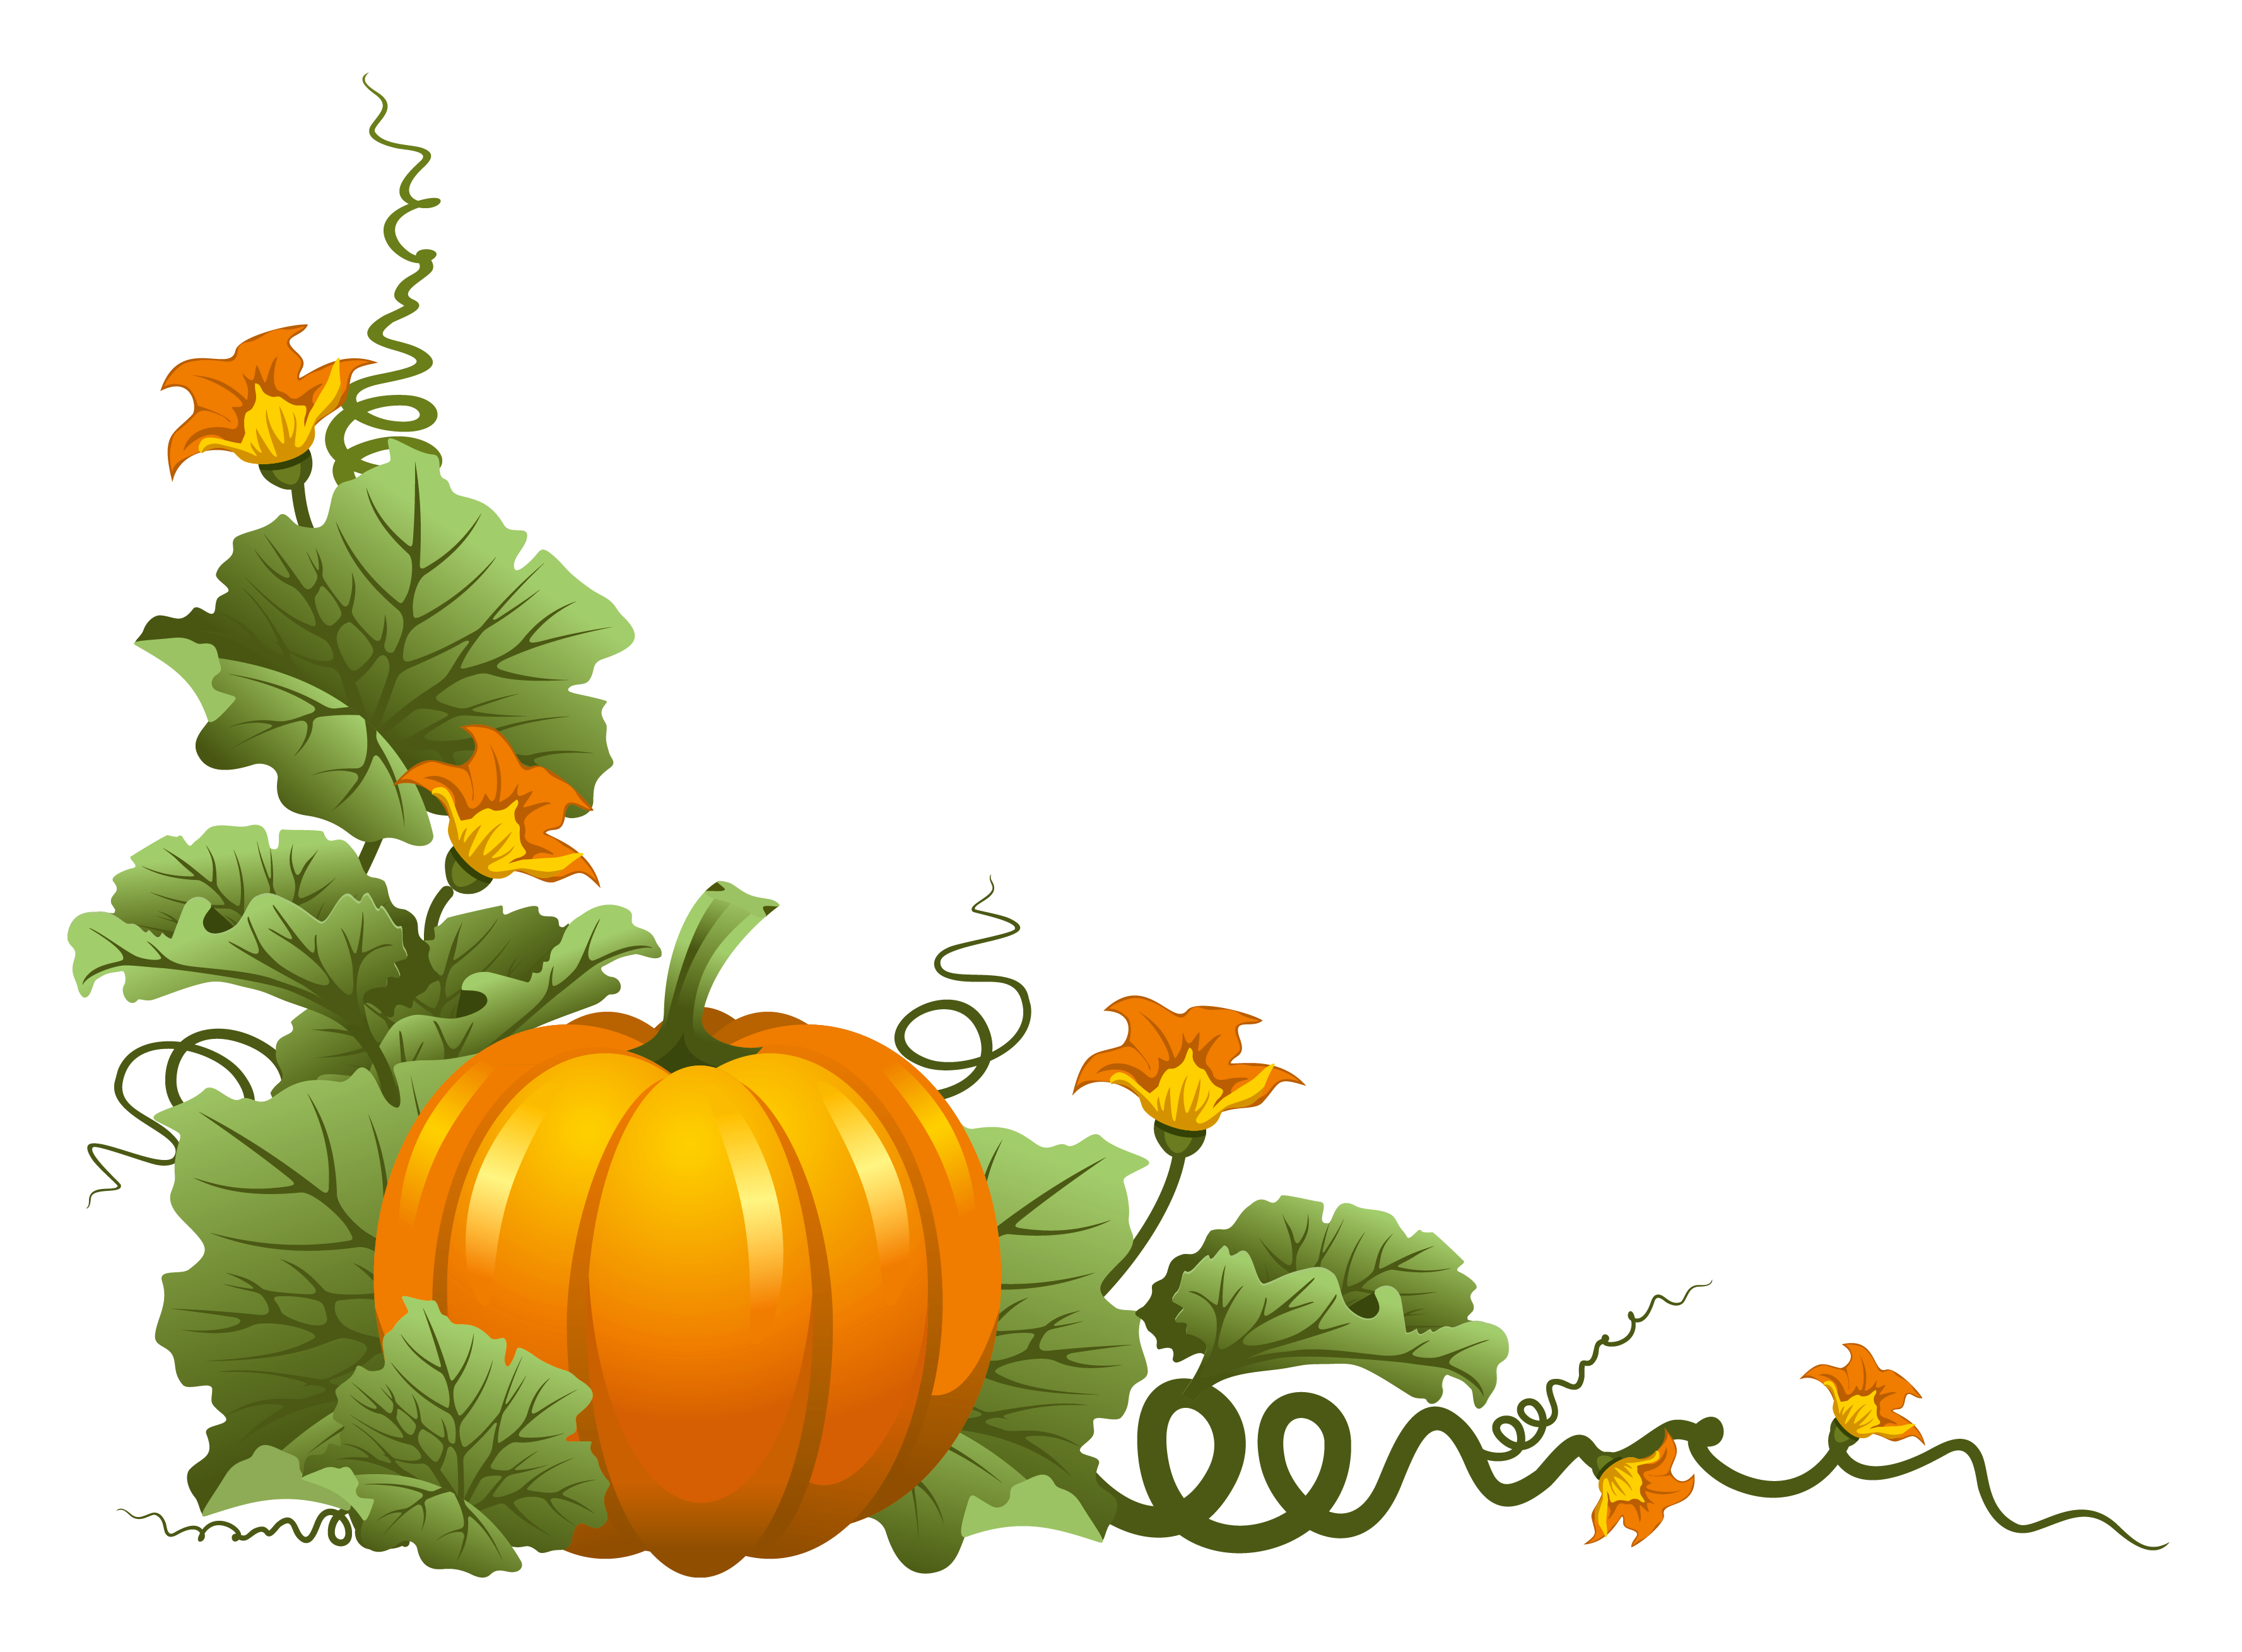 Fall harvest thanksgiving photo clipart clipart transparent stock Pumpkin Decor PNG Clipart | ősz/ fall | Pinterest | Clipart gallery ... clipart transparent stock